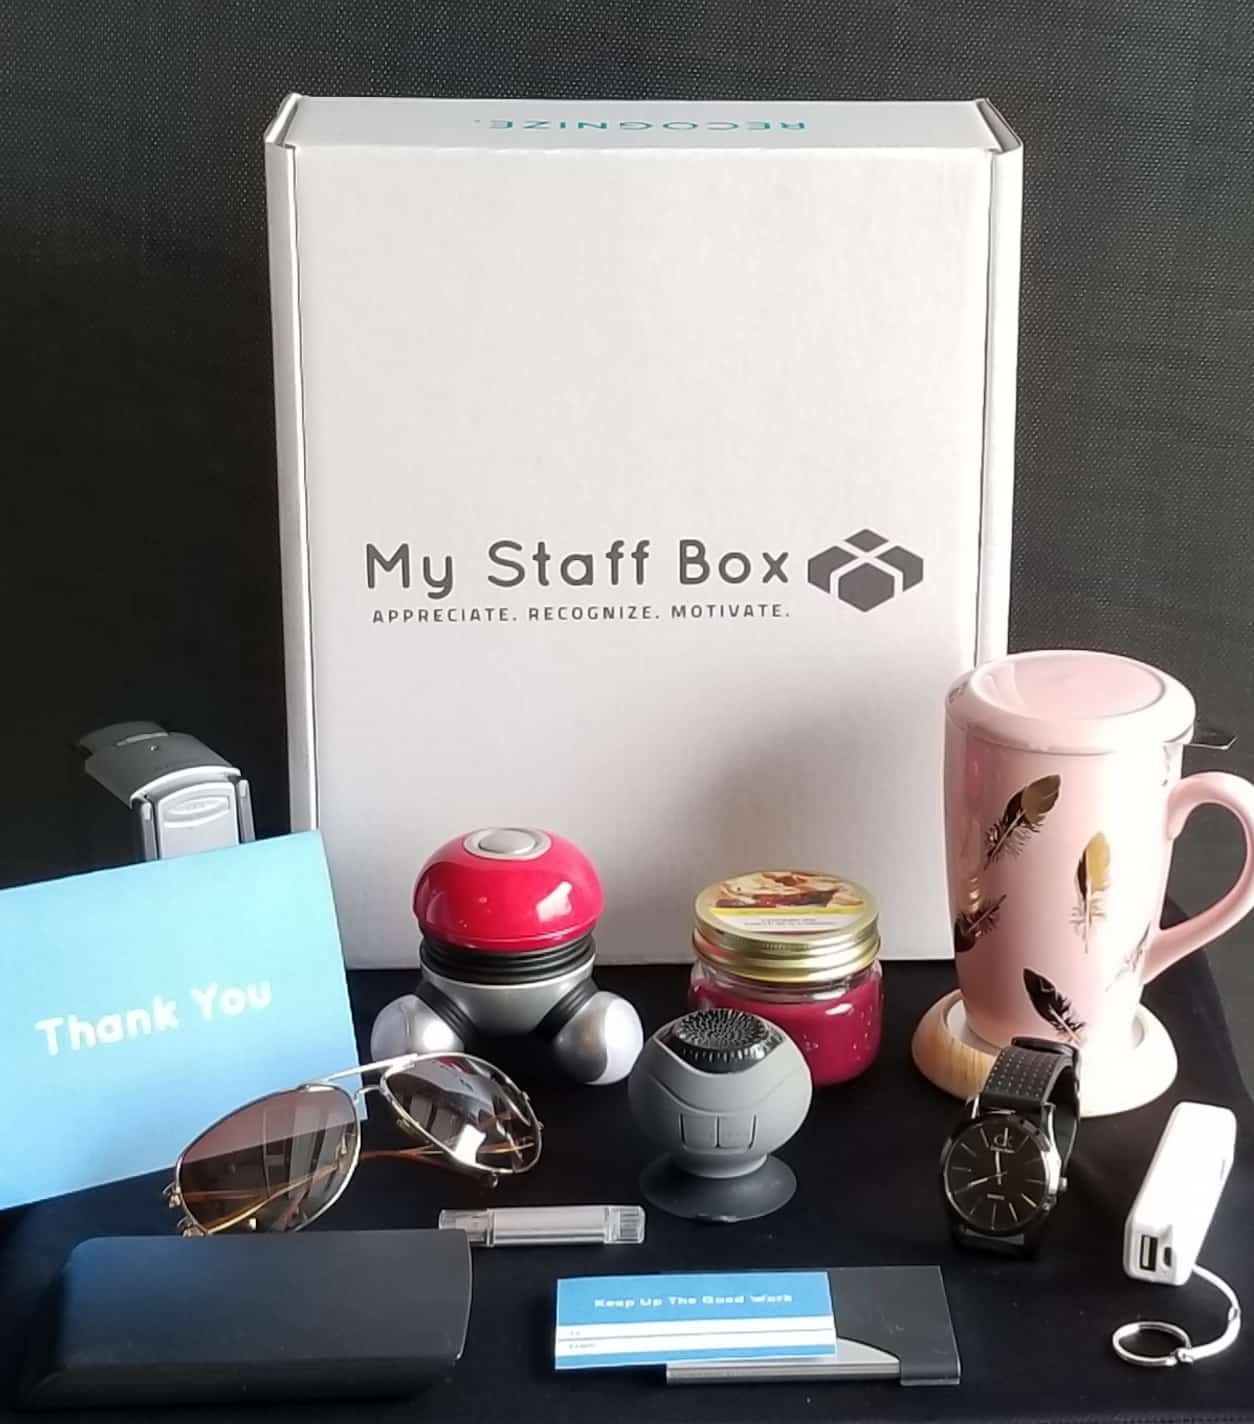 My Staff Box